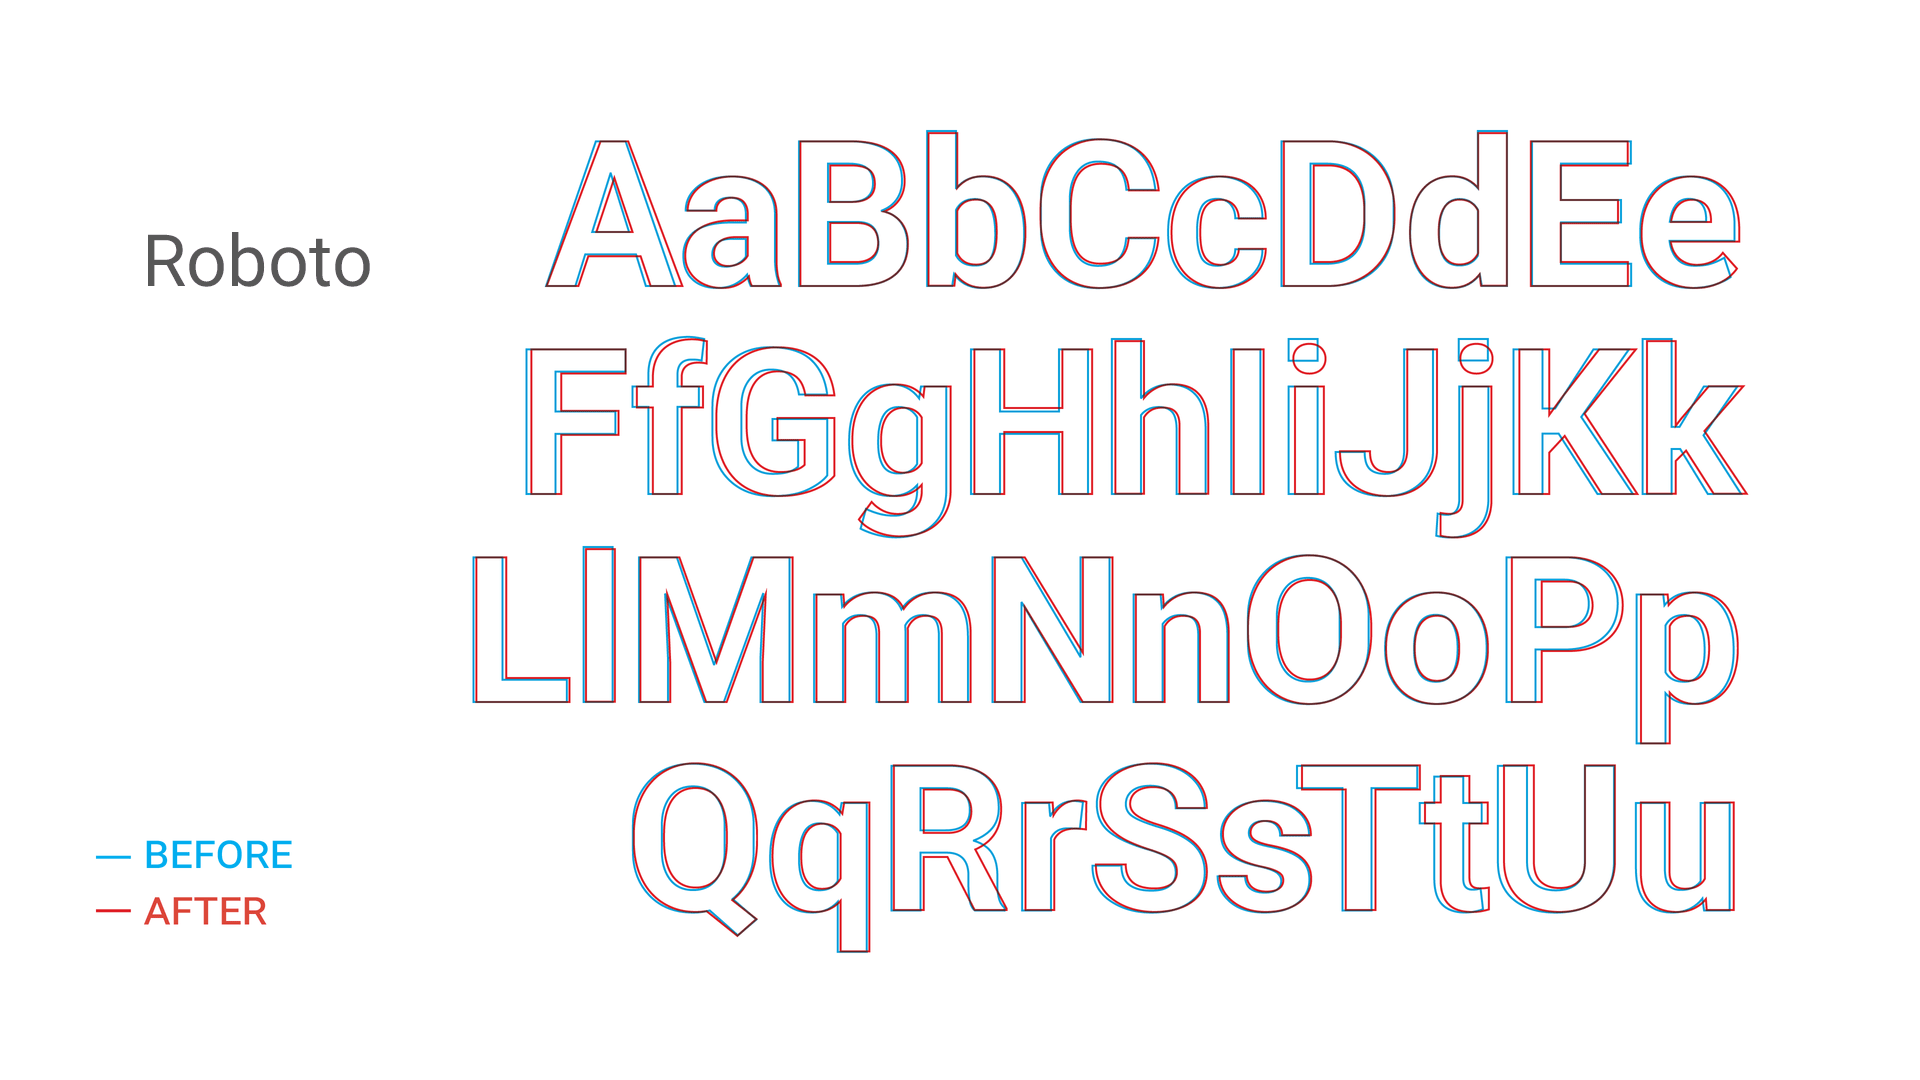 A picture of Roboto typography, showing the subtle differences and the attention to detail in a recent update.